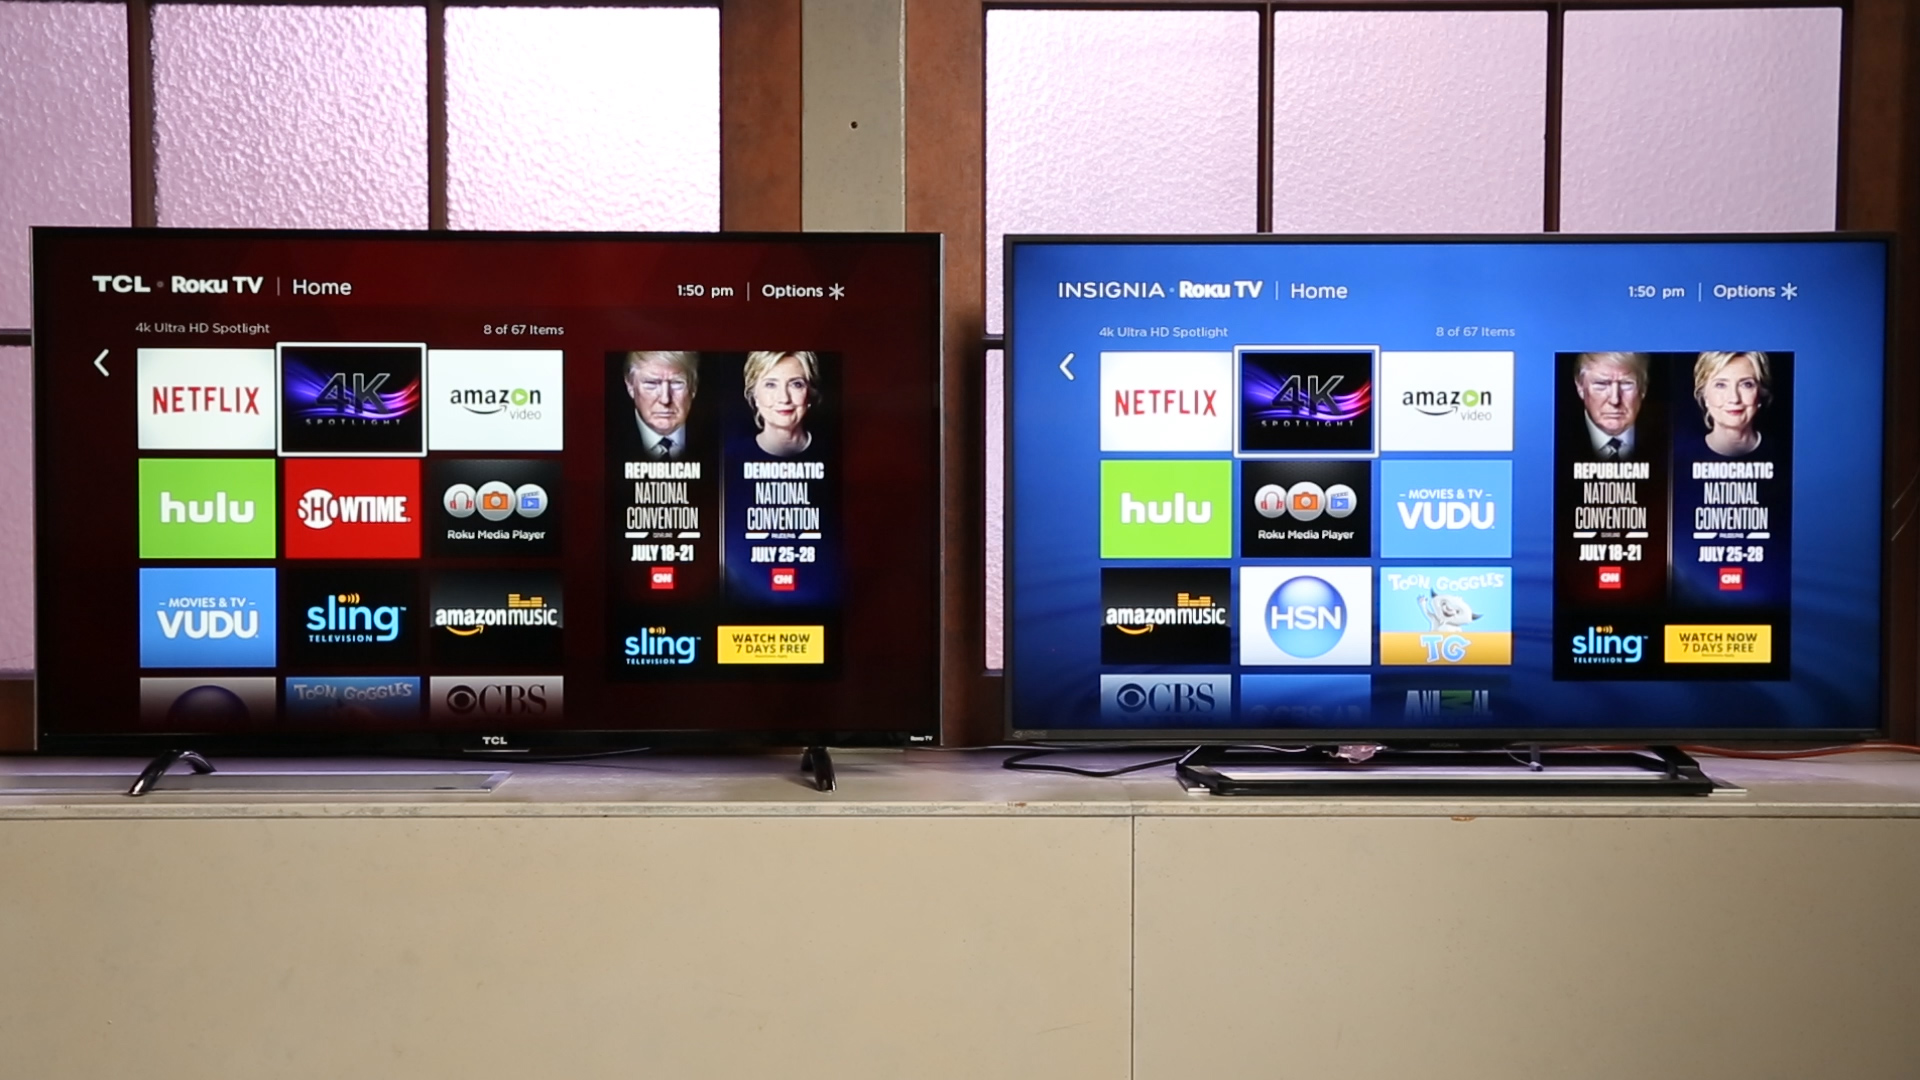 Video: 4K Roku TVs bring higher resolution to simpler smart TV